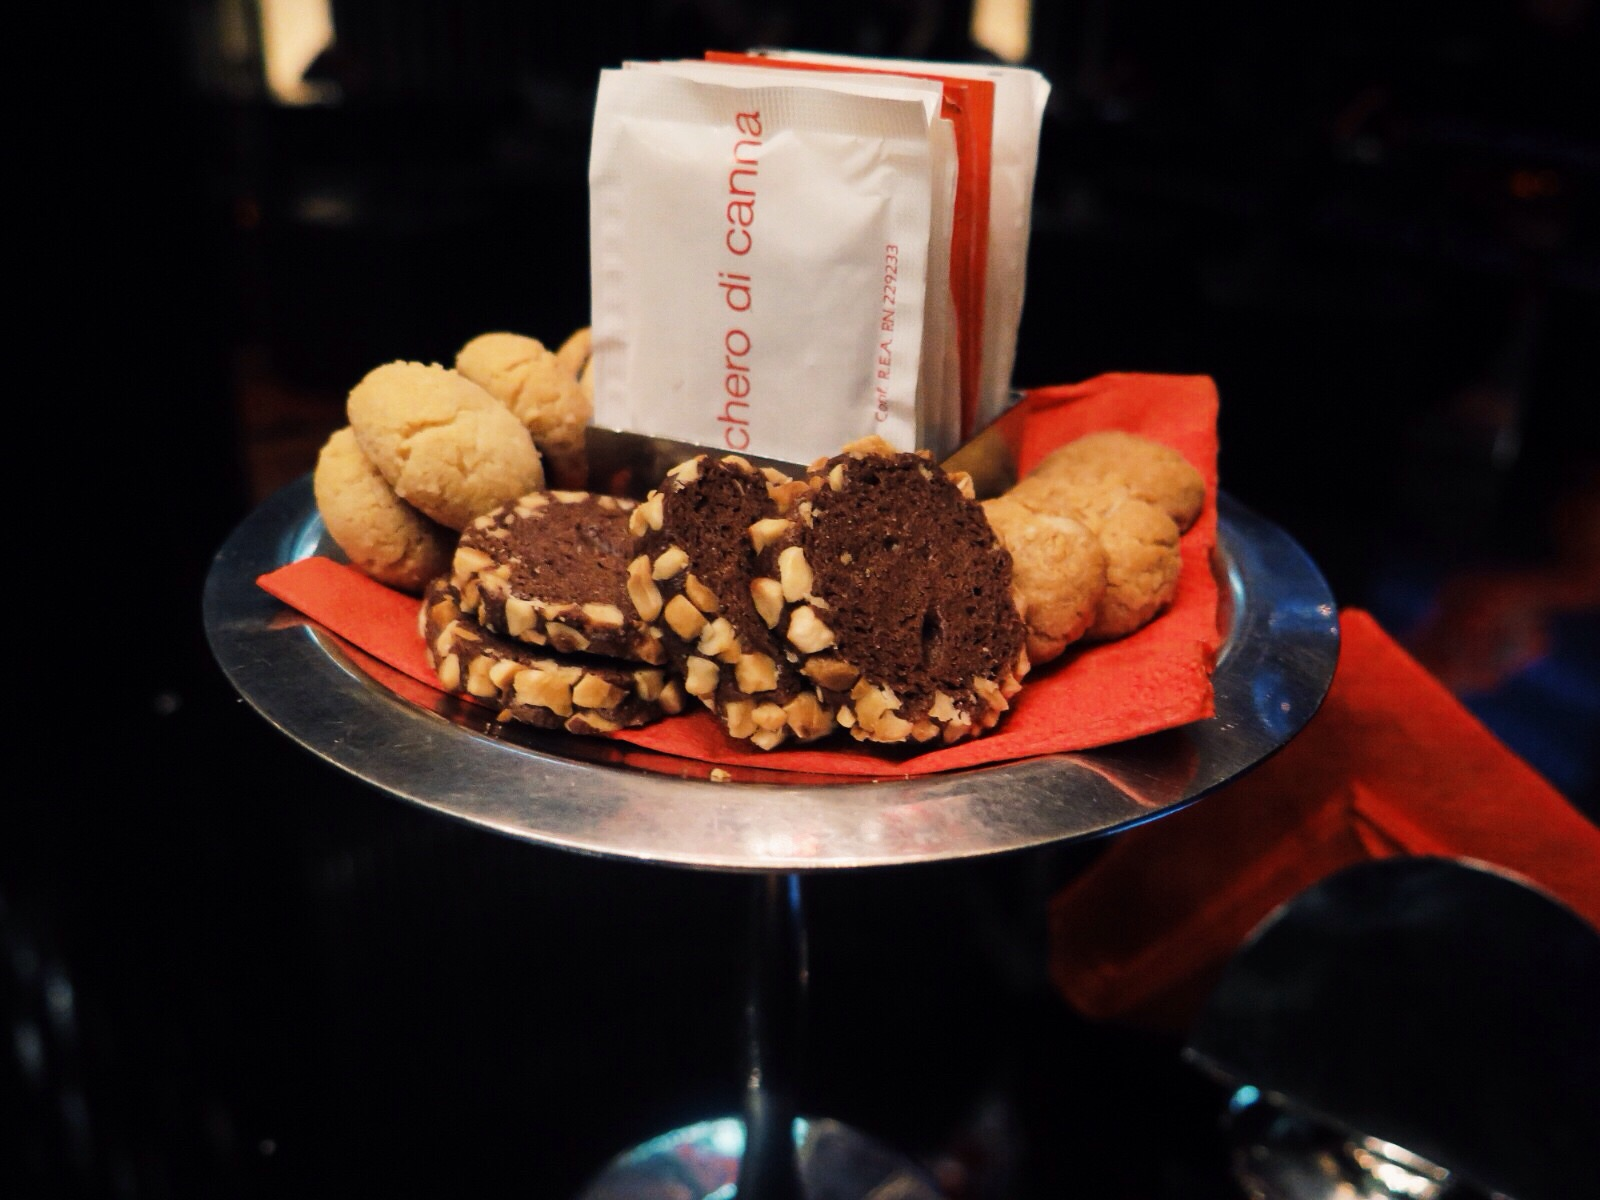 Biscuit tier at the Dolce&Gabbana Bar